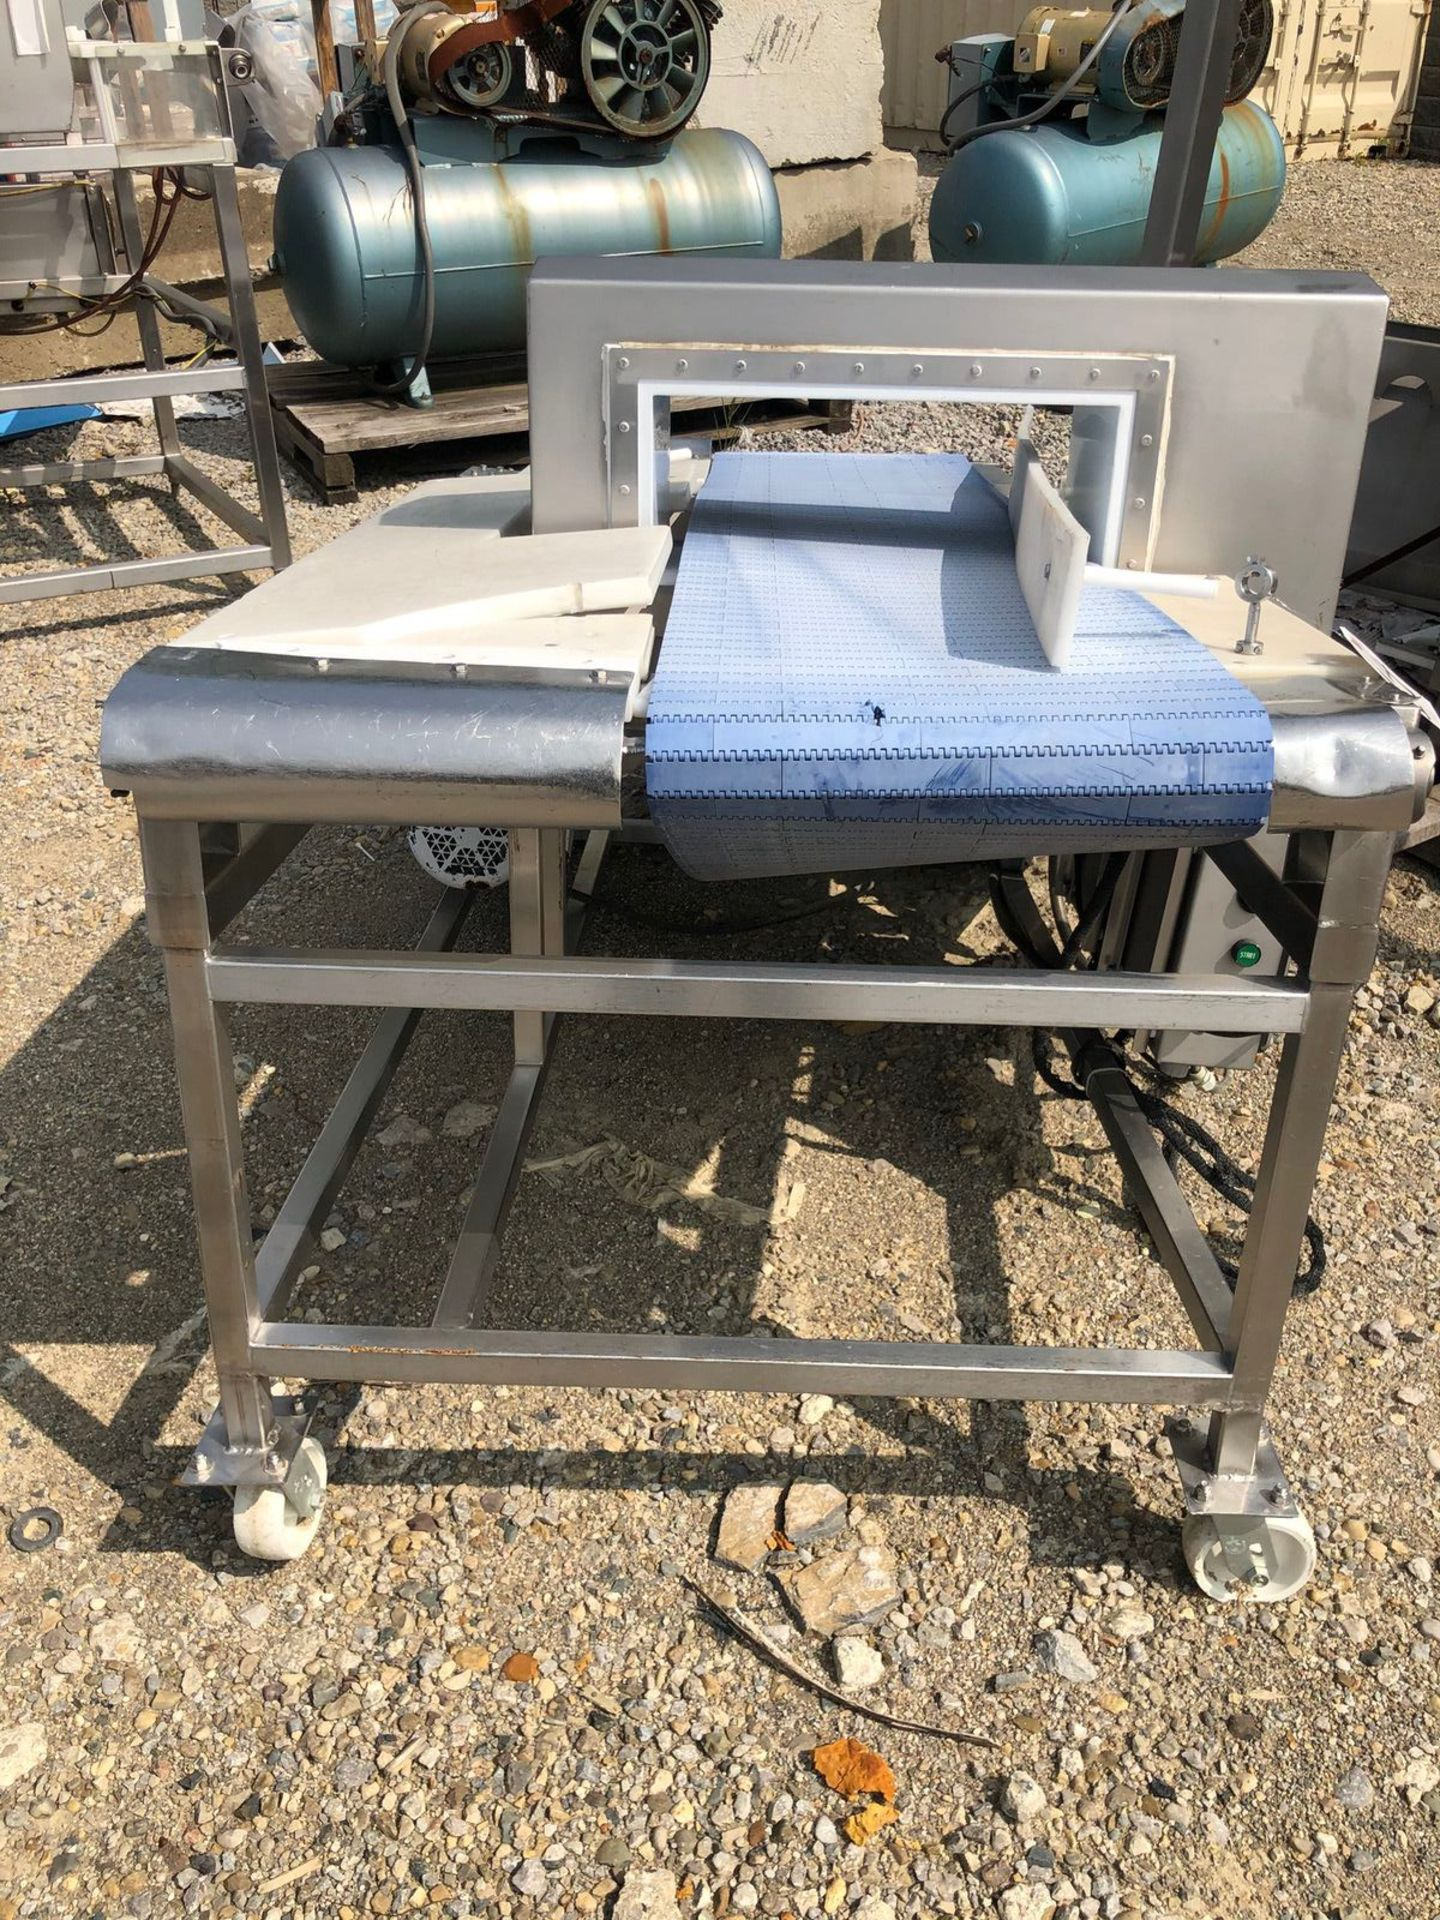 Safeline Metal Detector, Approx Aperture 20in W x 7in Clear | Rig Fee: $150 See Full Desc - Image 2 of 5